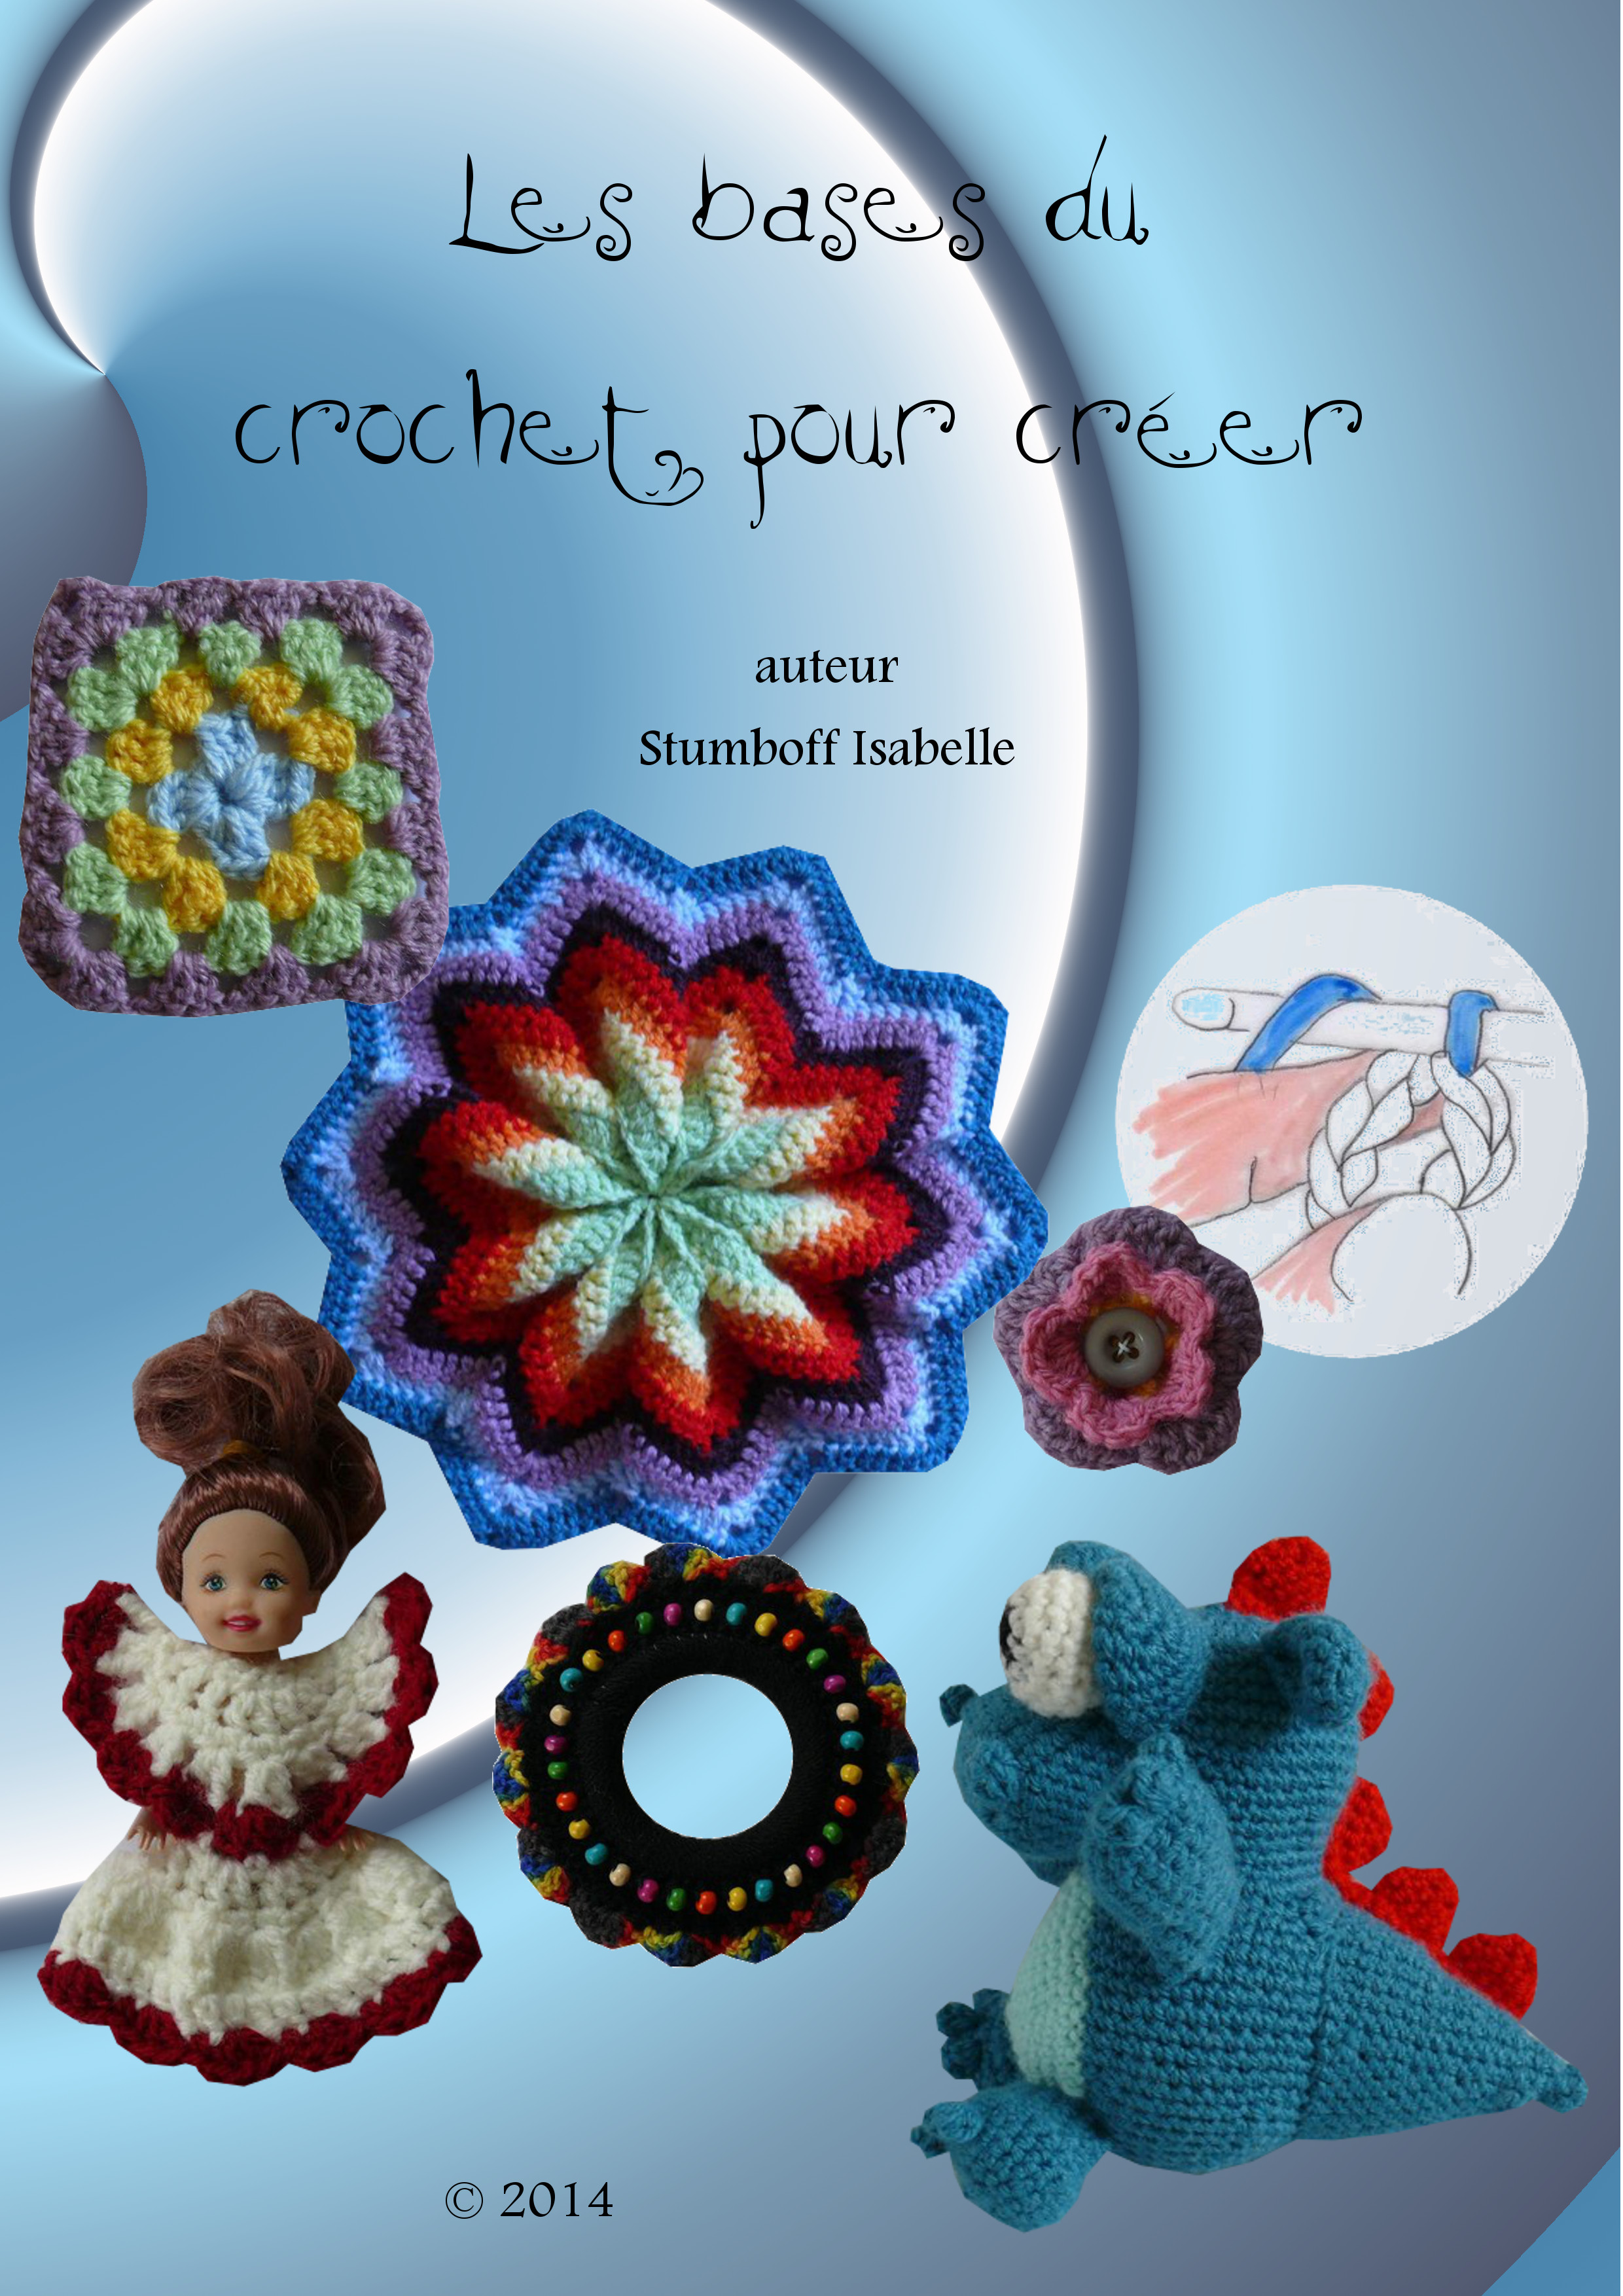 http://static.blog4ever.com/2013/04/737773/couverture-crochet-rond.jpg